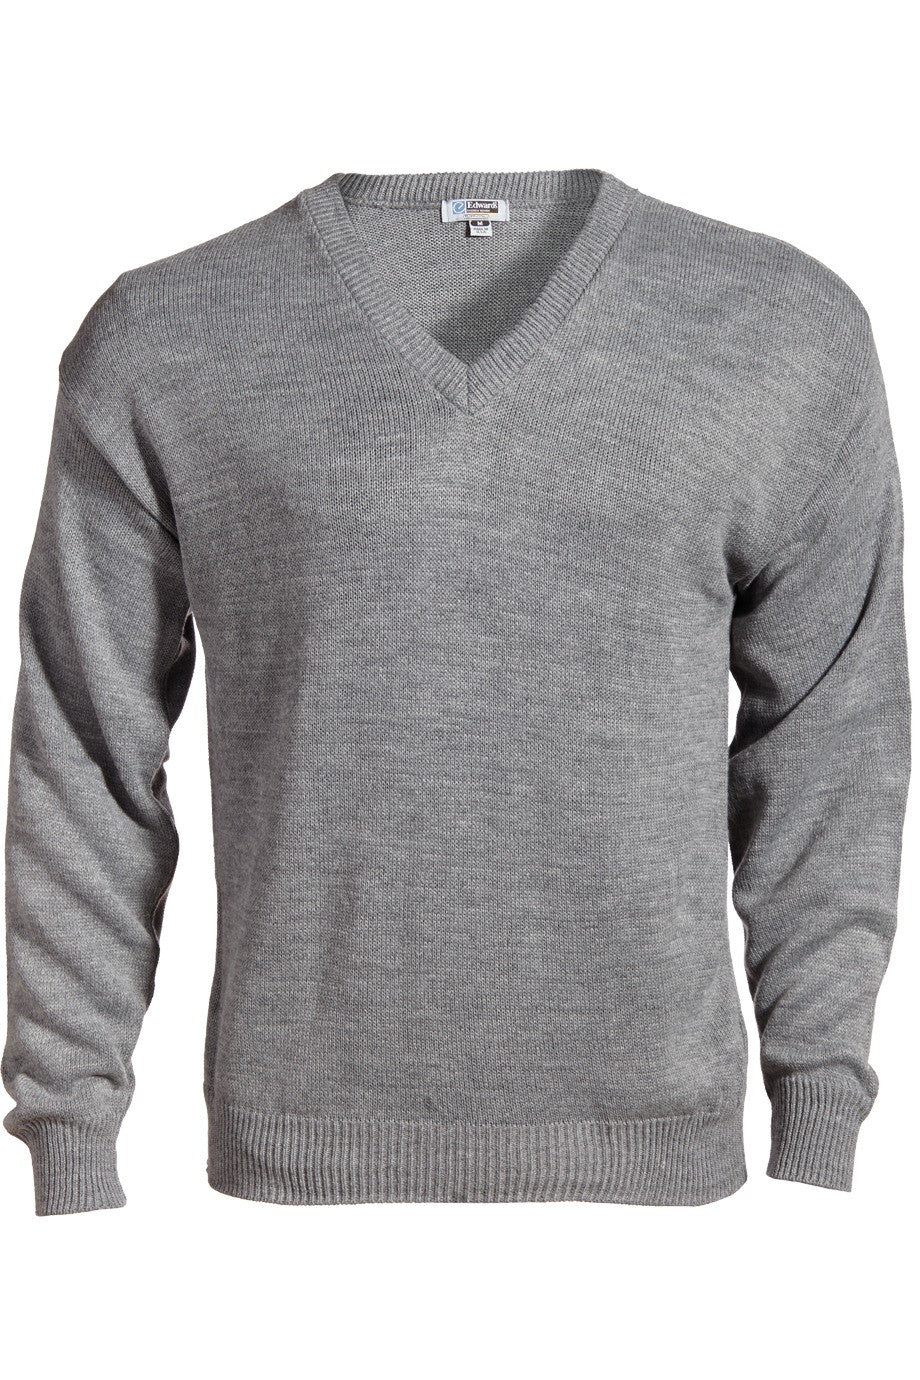 Men's Missionary V-Neck Sweater by Edwards - Kater Shop